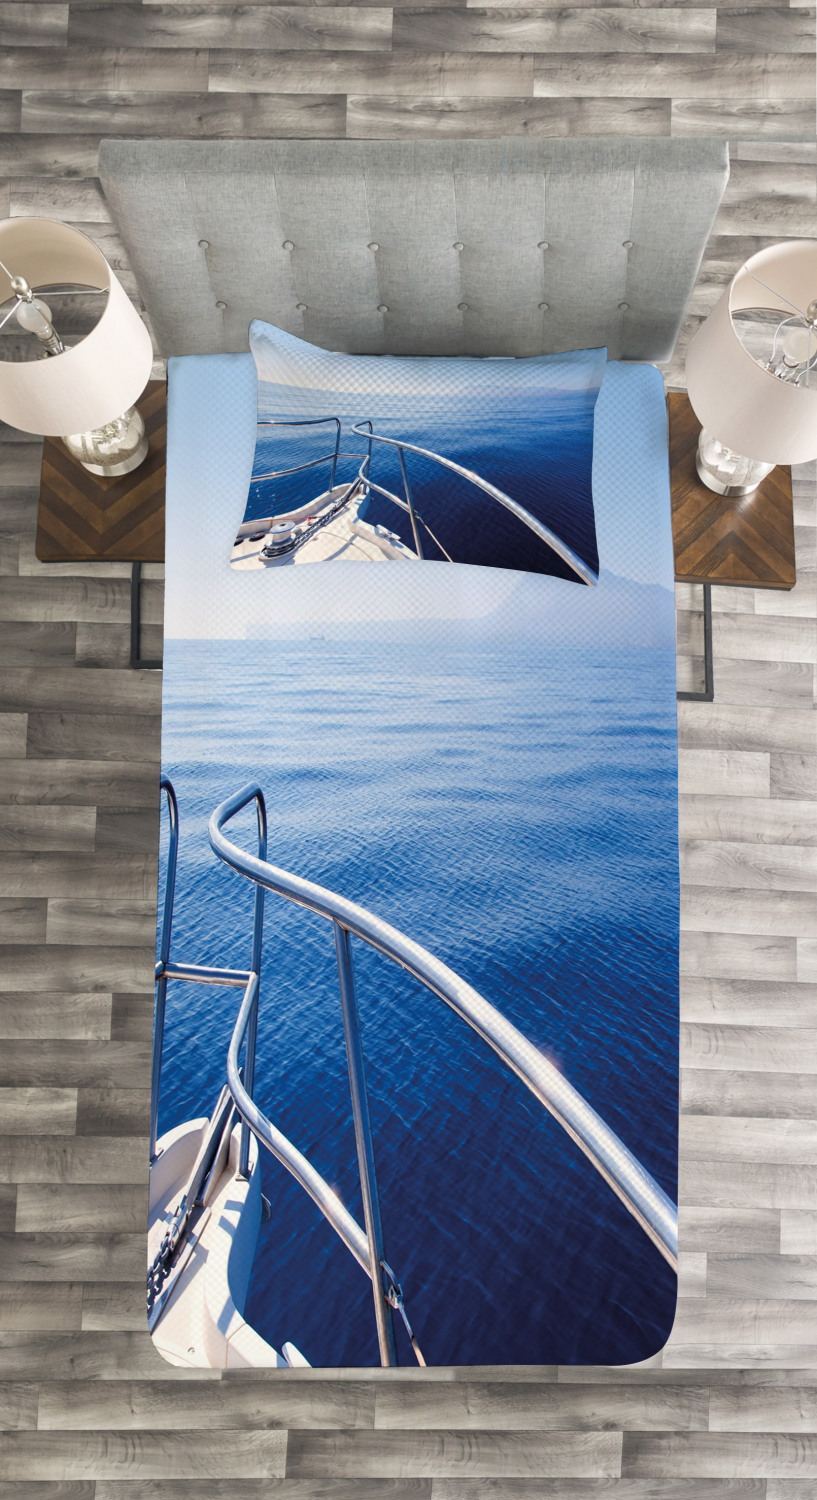 Home & Garden Quilts, Bedspreads & Coverlets mediatime.sn Boat ...